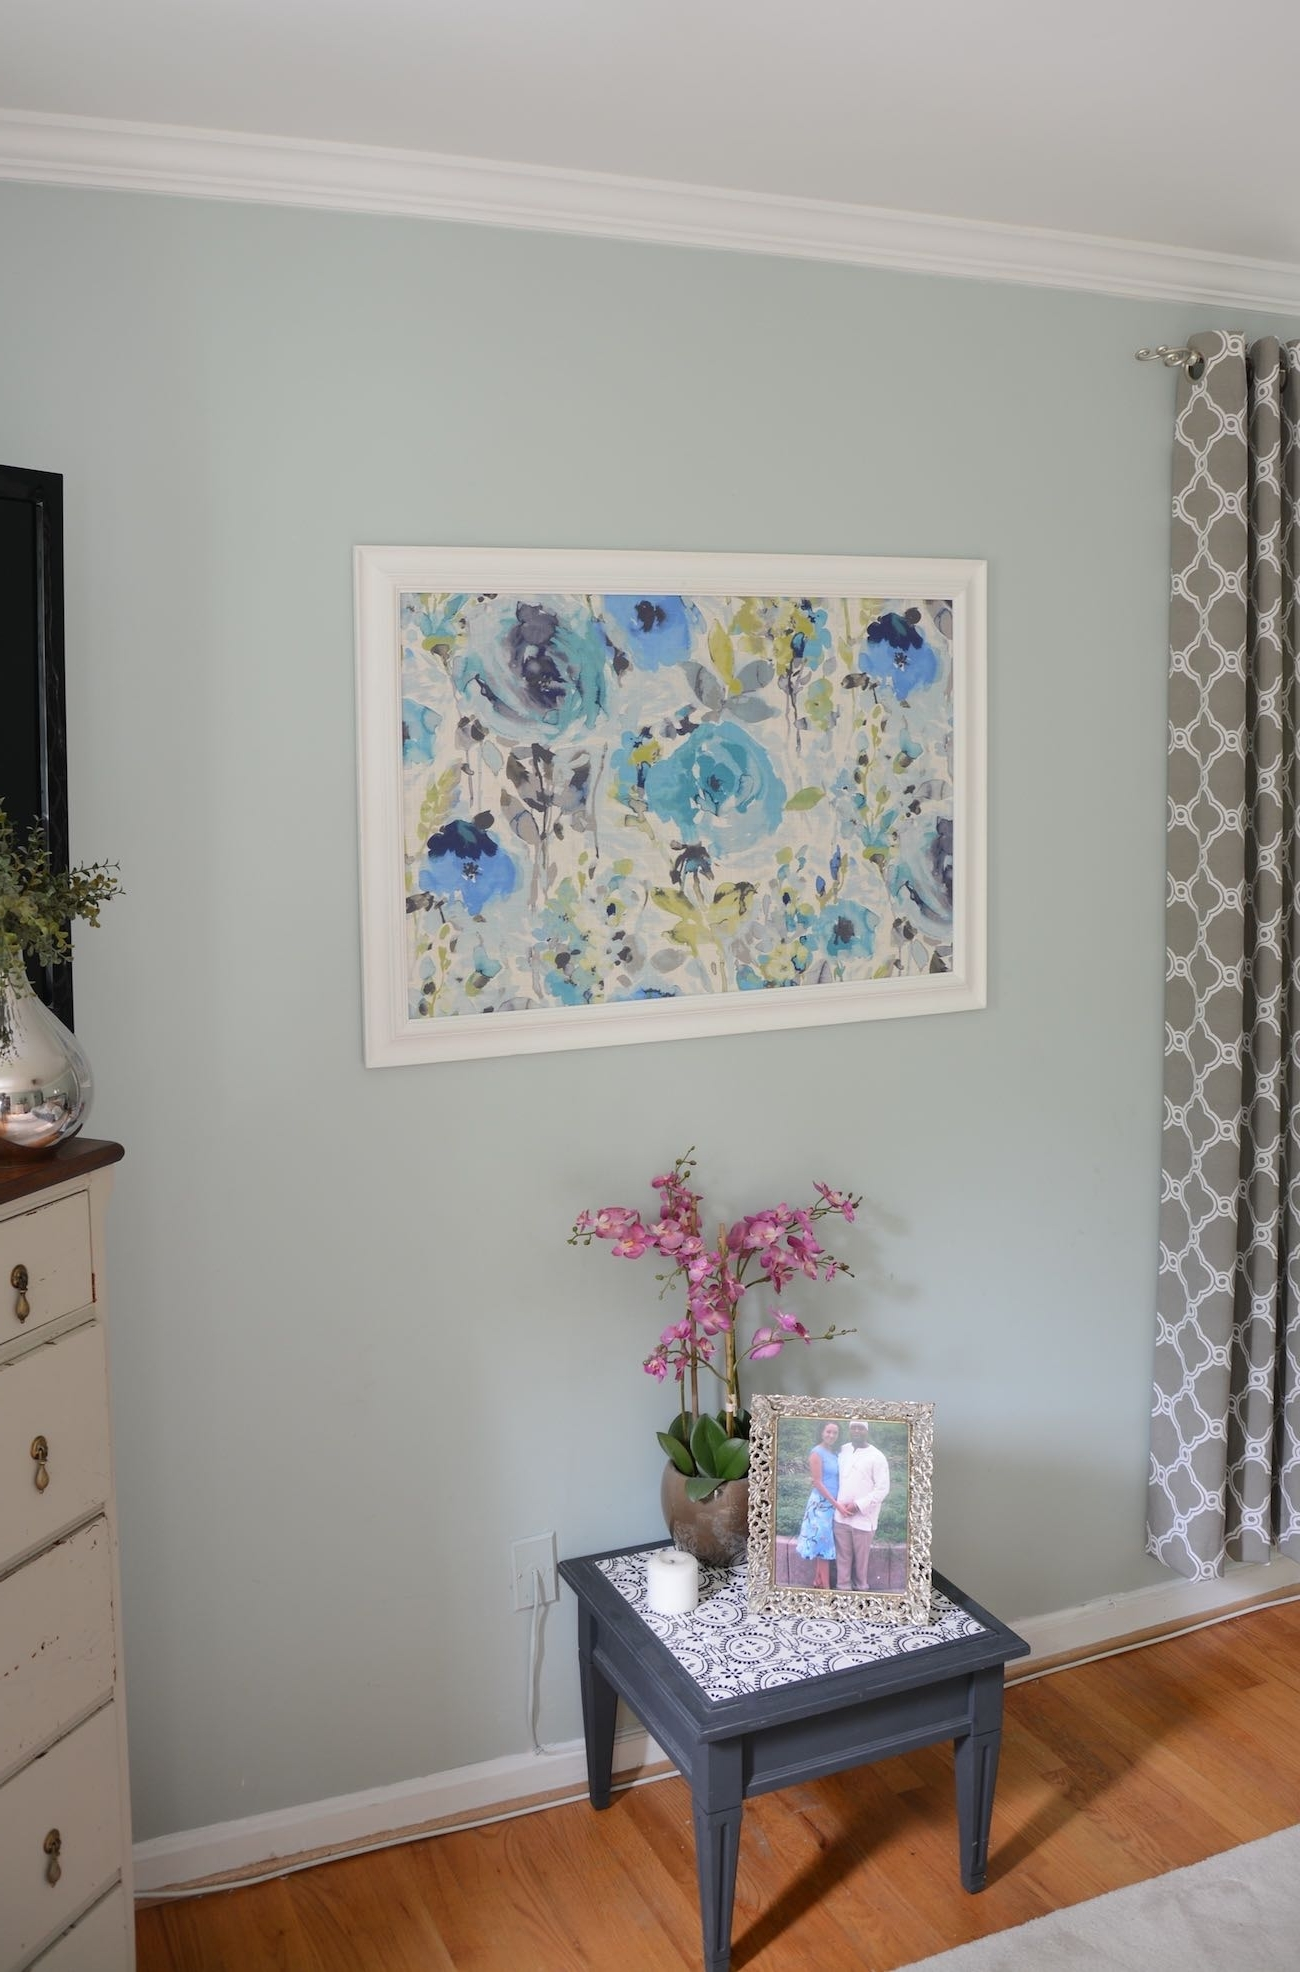 Most Recent How To Frame Fabric For Wall Art With A Picture Frame Throughout Wall Art Fabric Prints (View 3 of 15)